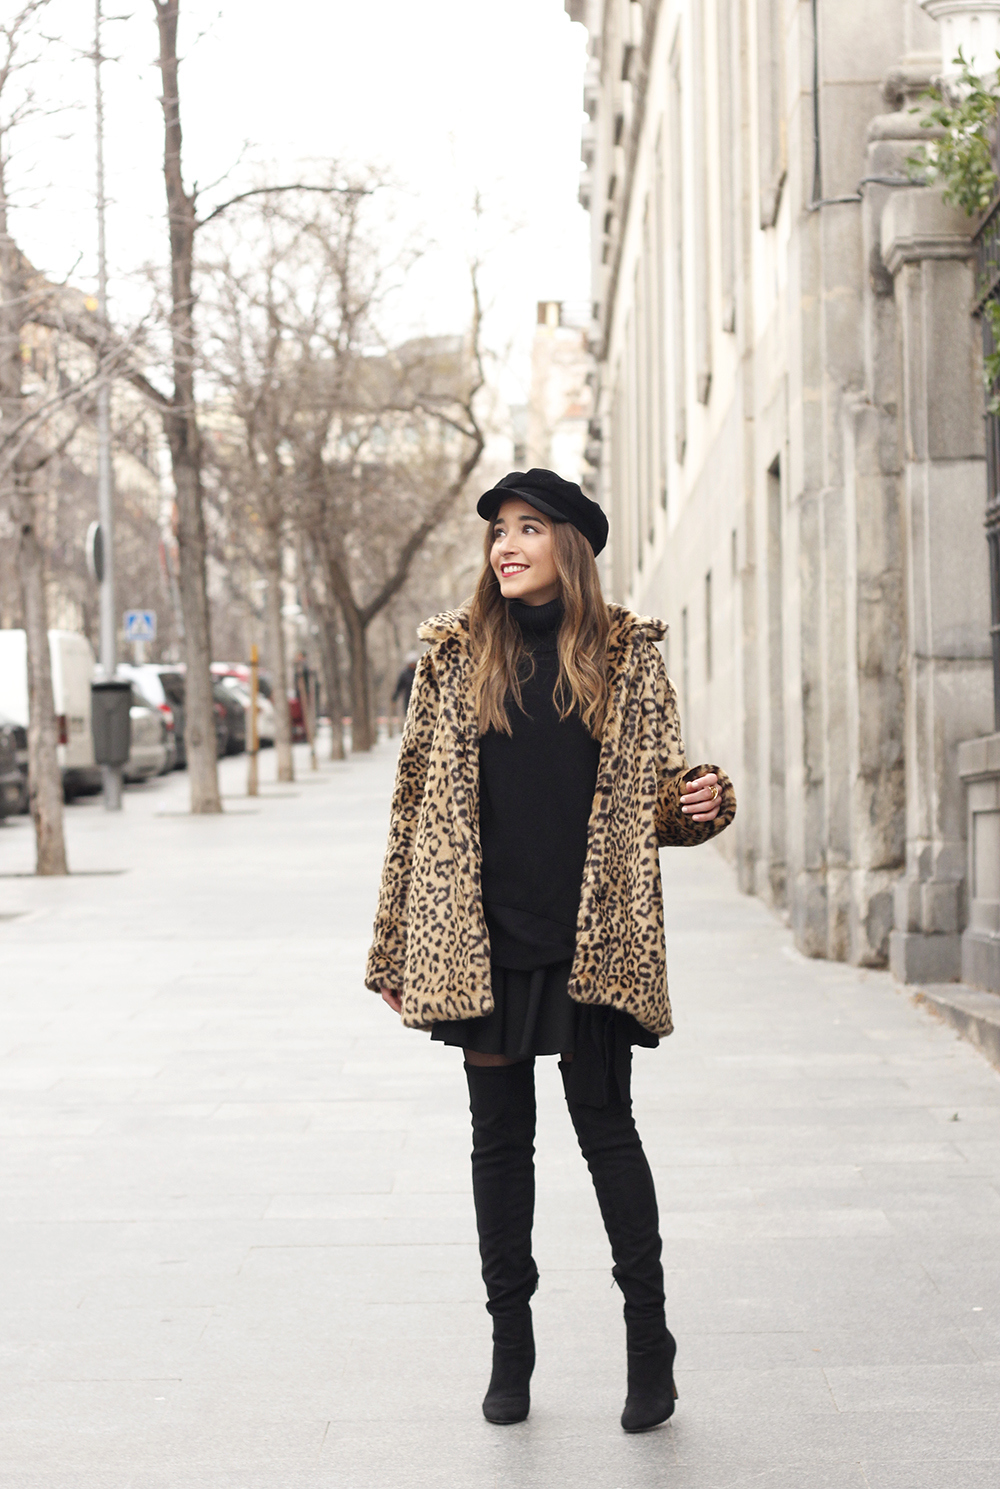 leopard coat black outfit over the knee boats givenchy black cap winter outfit05